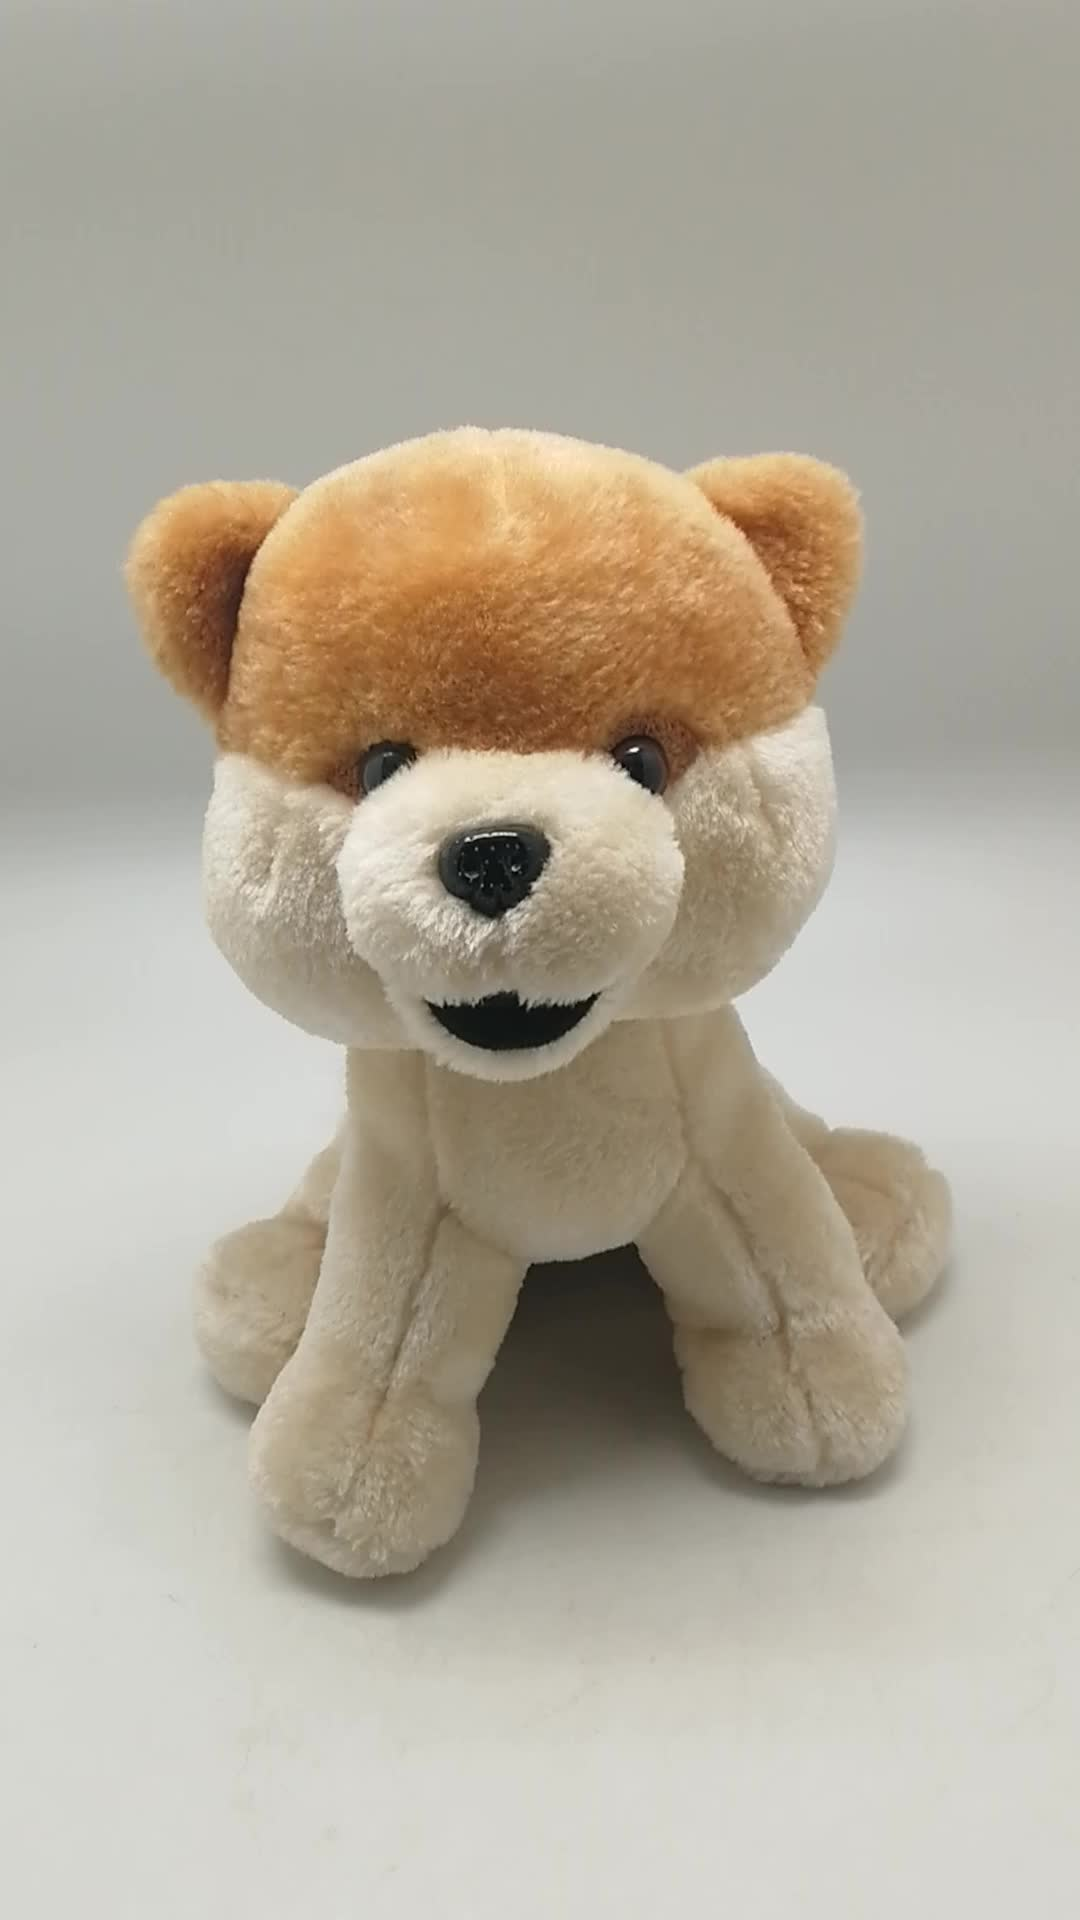 Classics Cute Stuffed Animal Plush Boo Dog